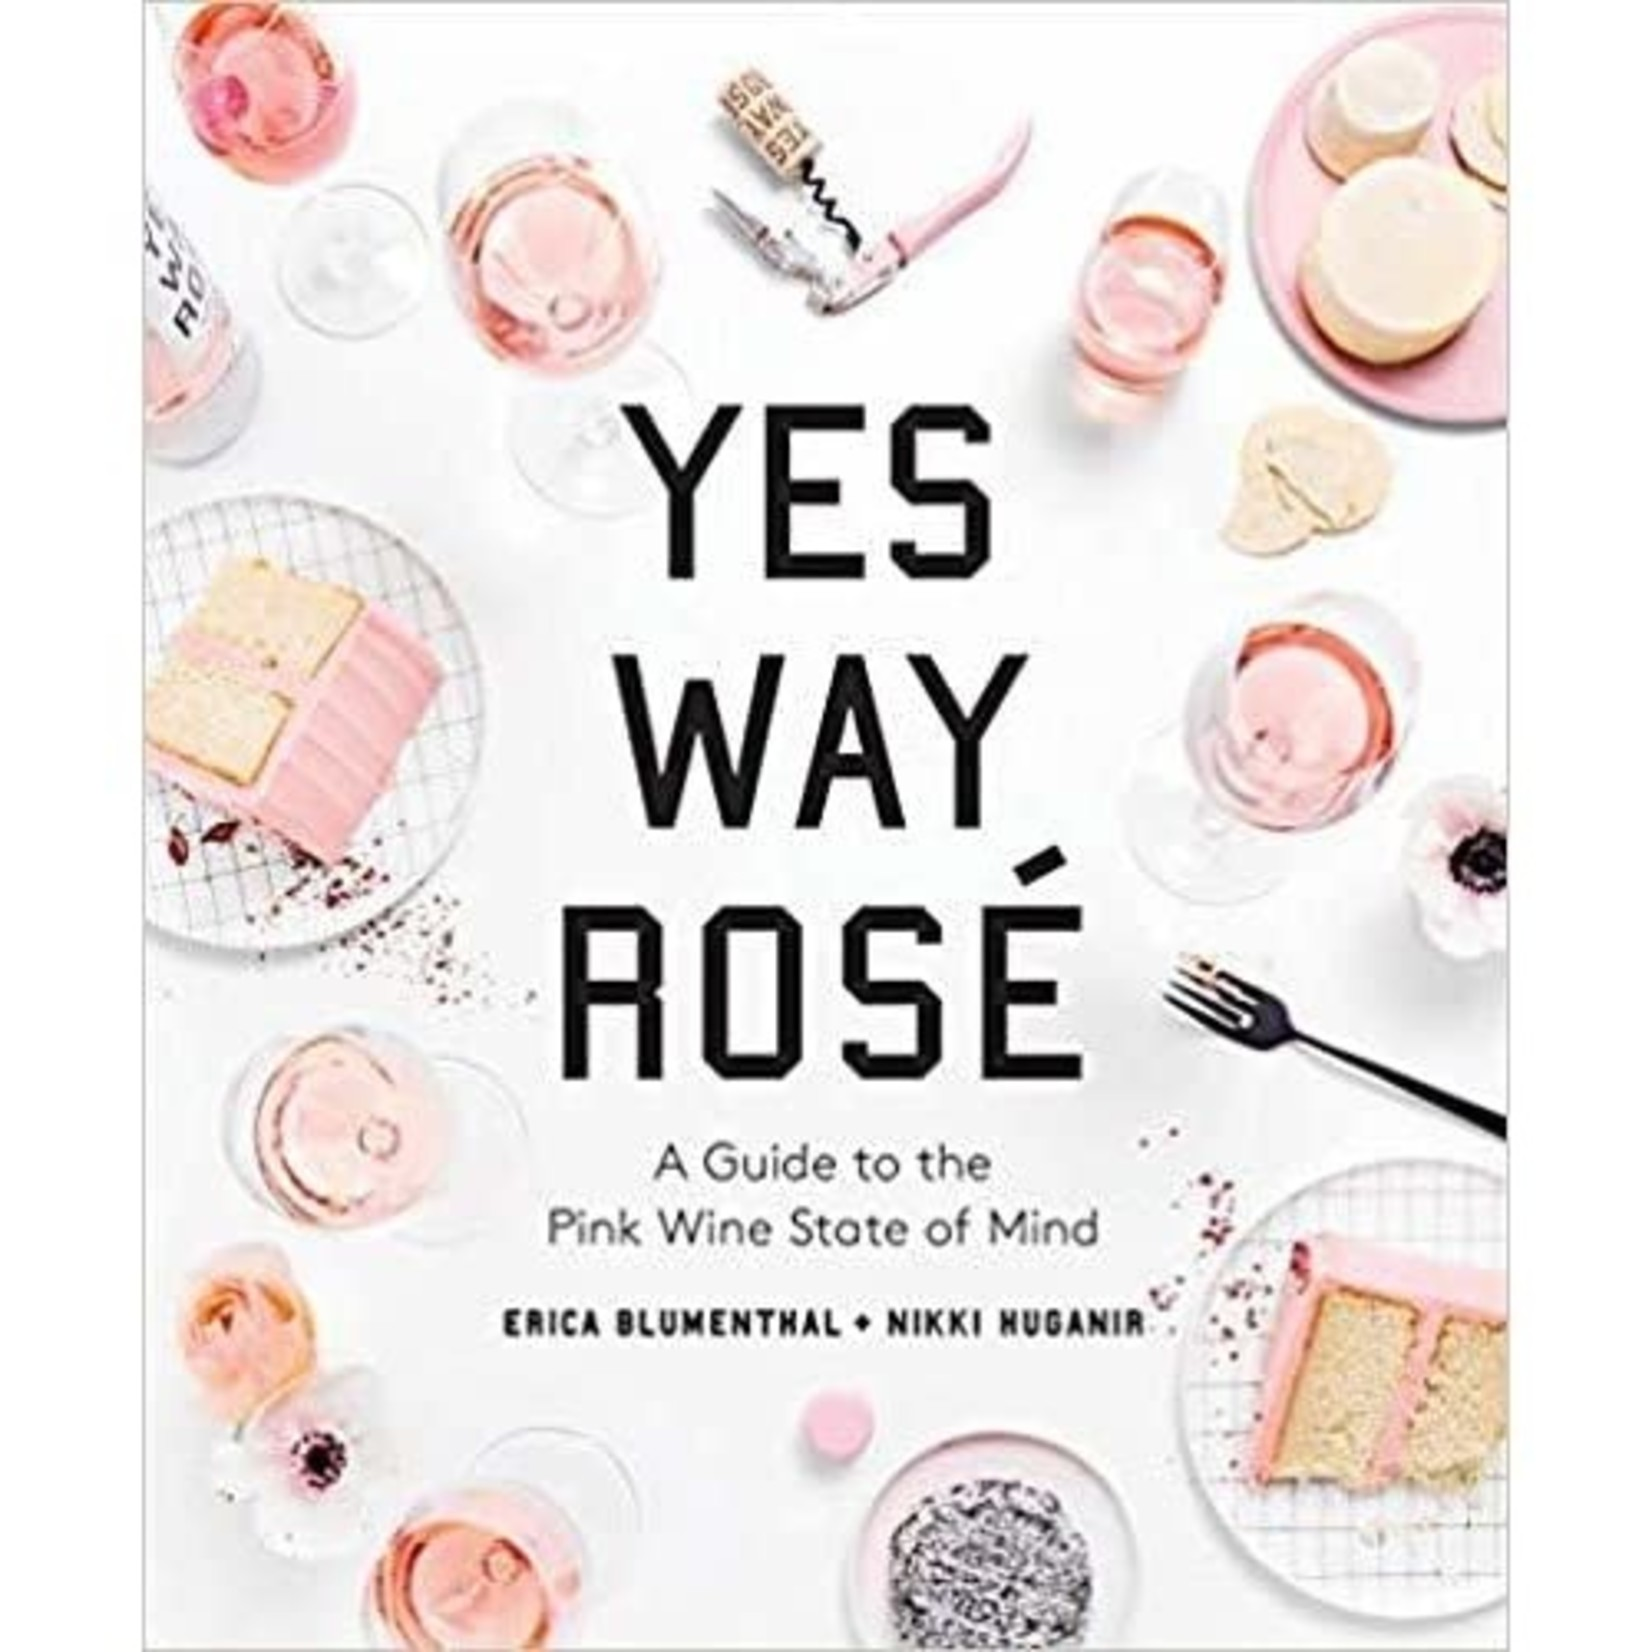 Yes Way Rosé - A Guide to the Pink Wine State of Mind